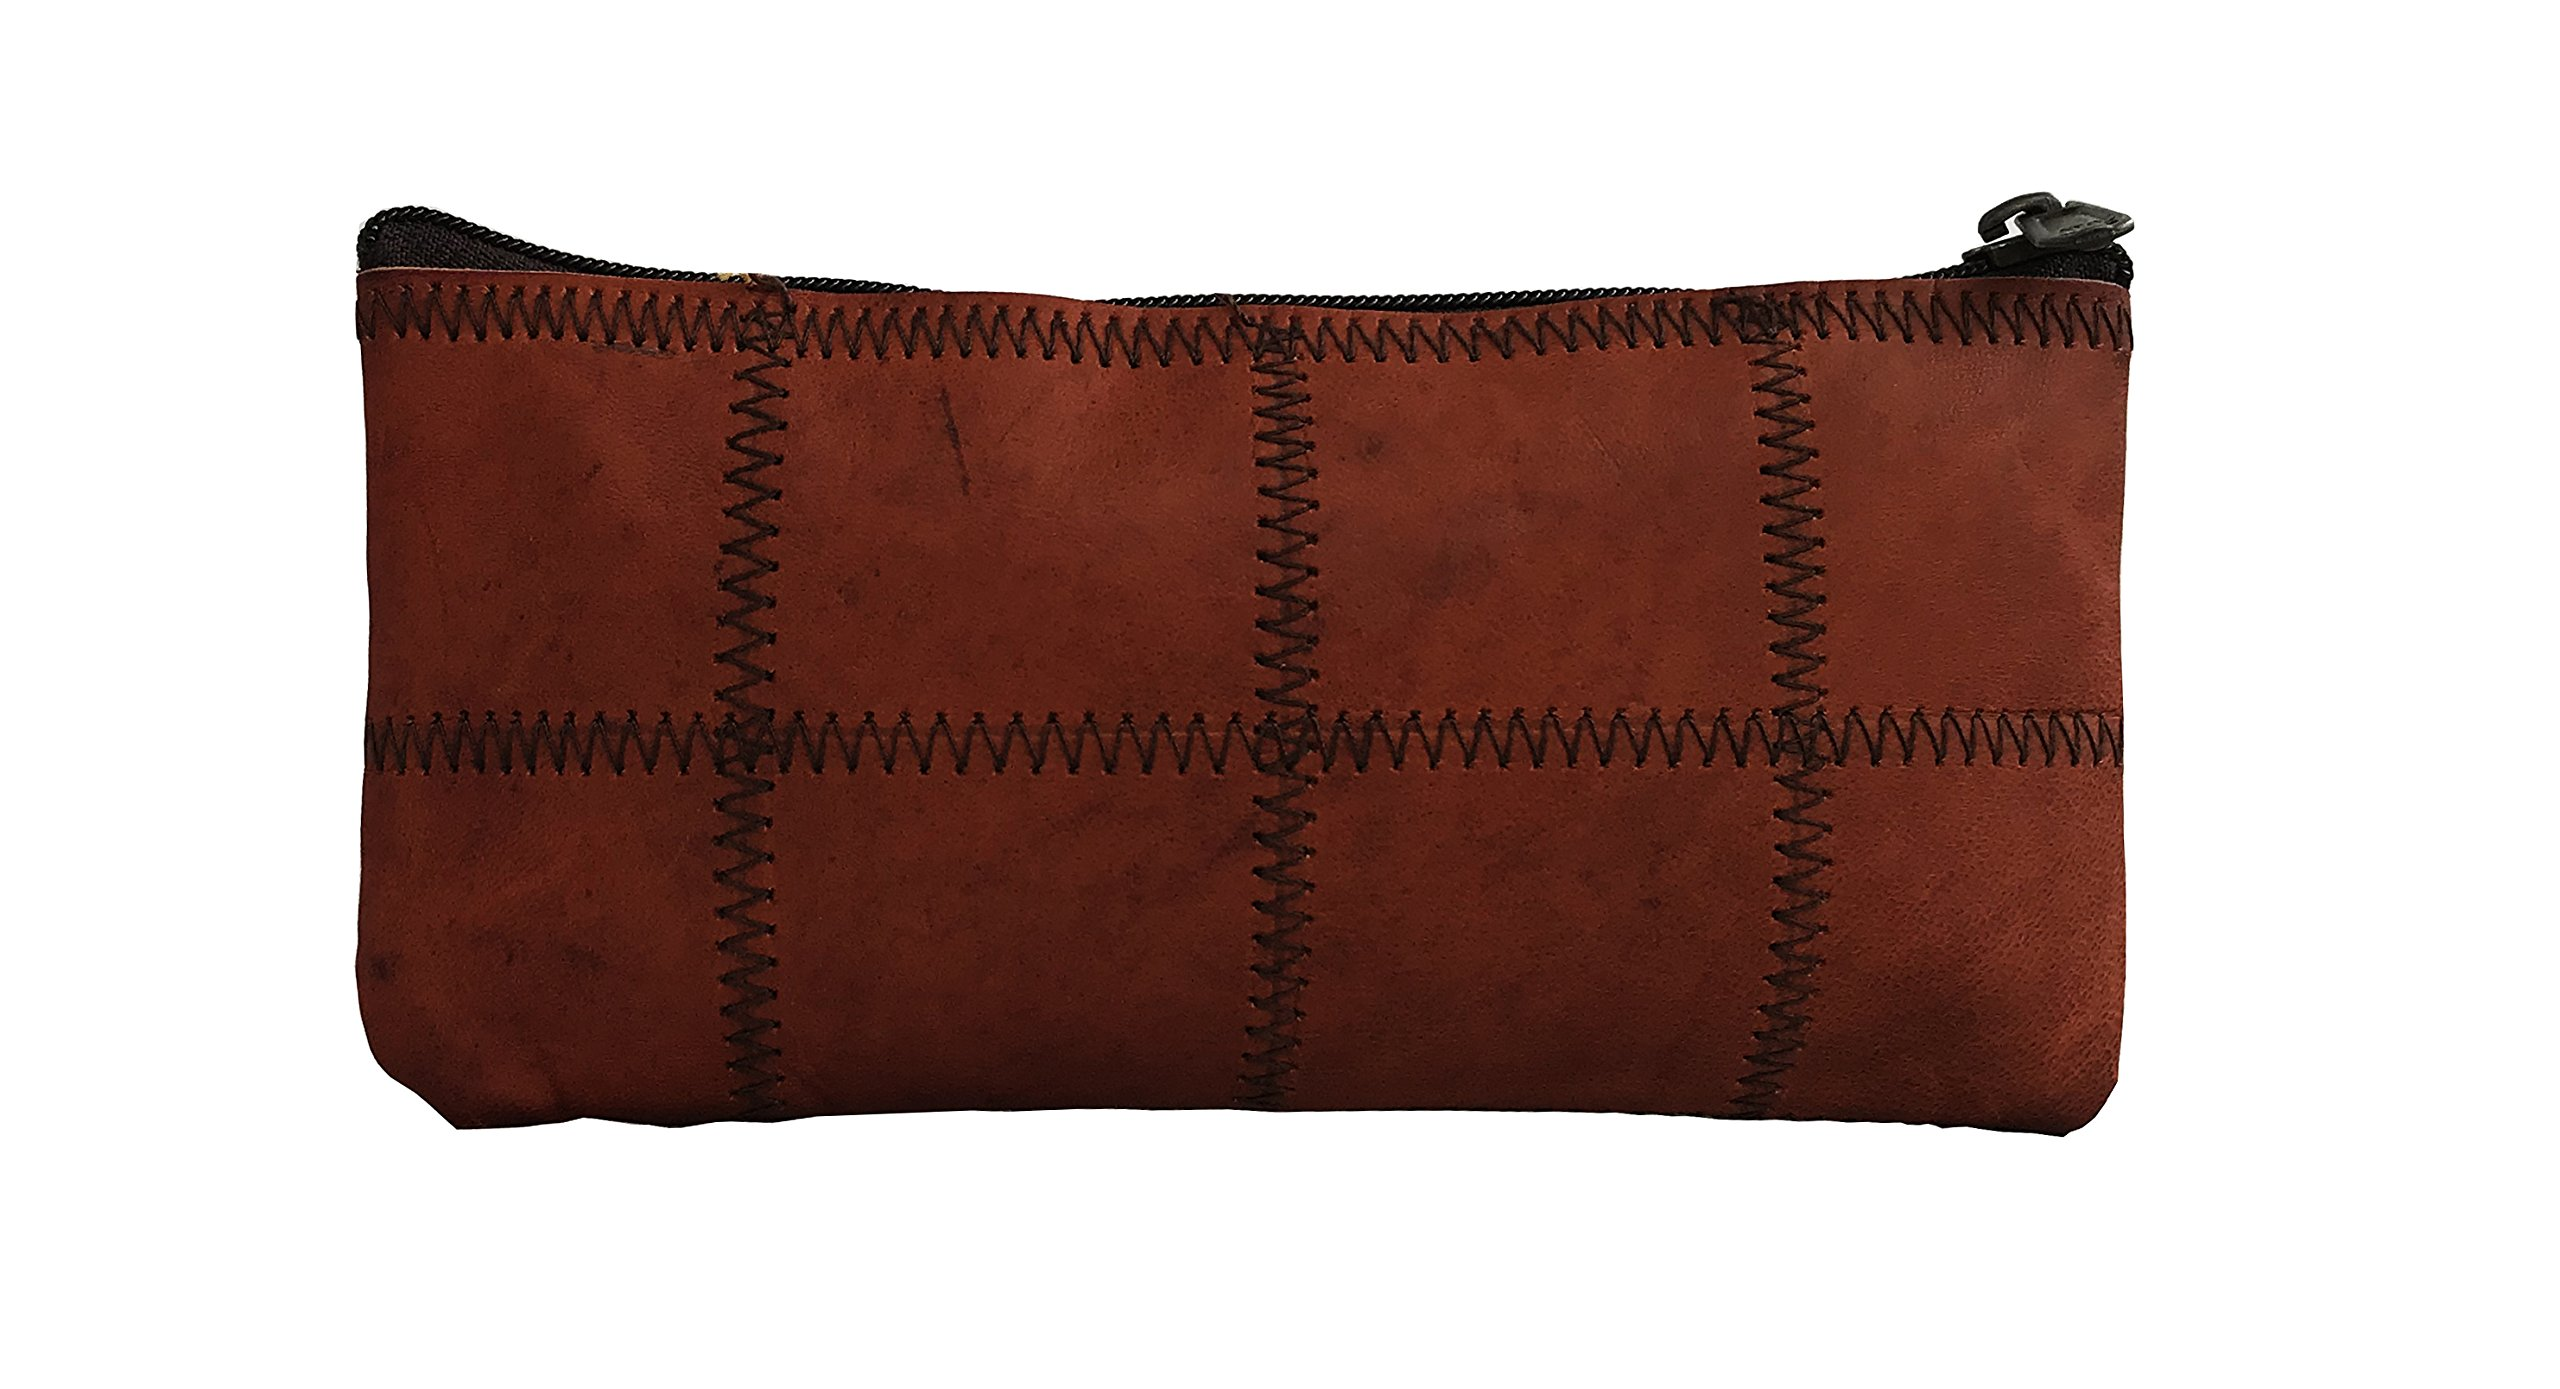 RK Rustic Genuine Leather Pencil Roll - Pen and Pencil Case Brown by RK